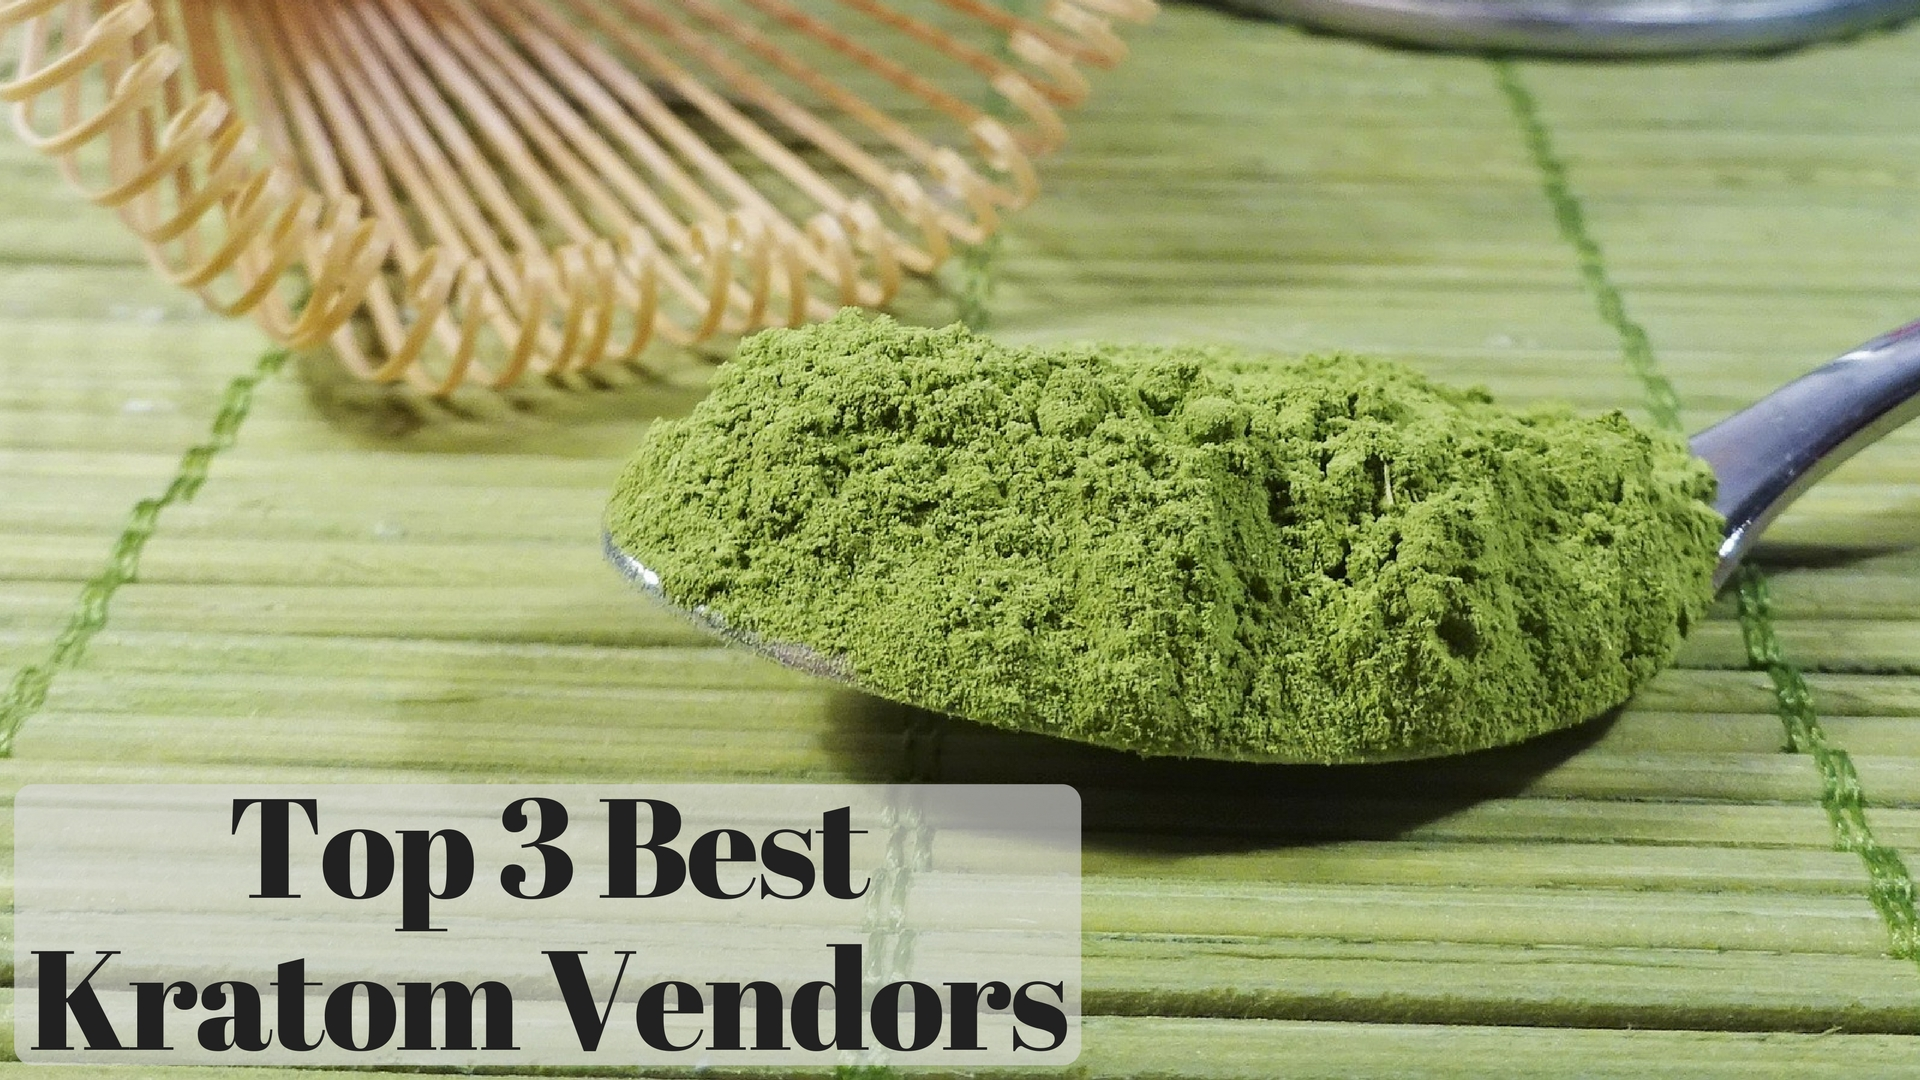 Top 3 Best Kratom Vendors Thumbnail With A Top-Heavy Spoonful Of Kratom